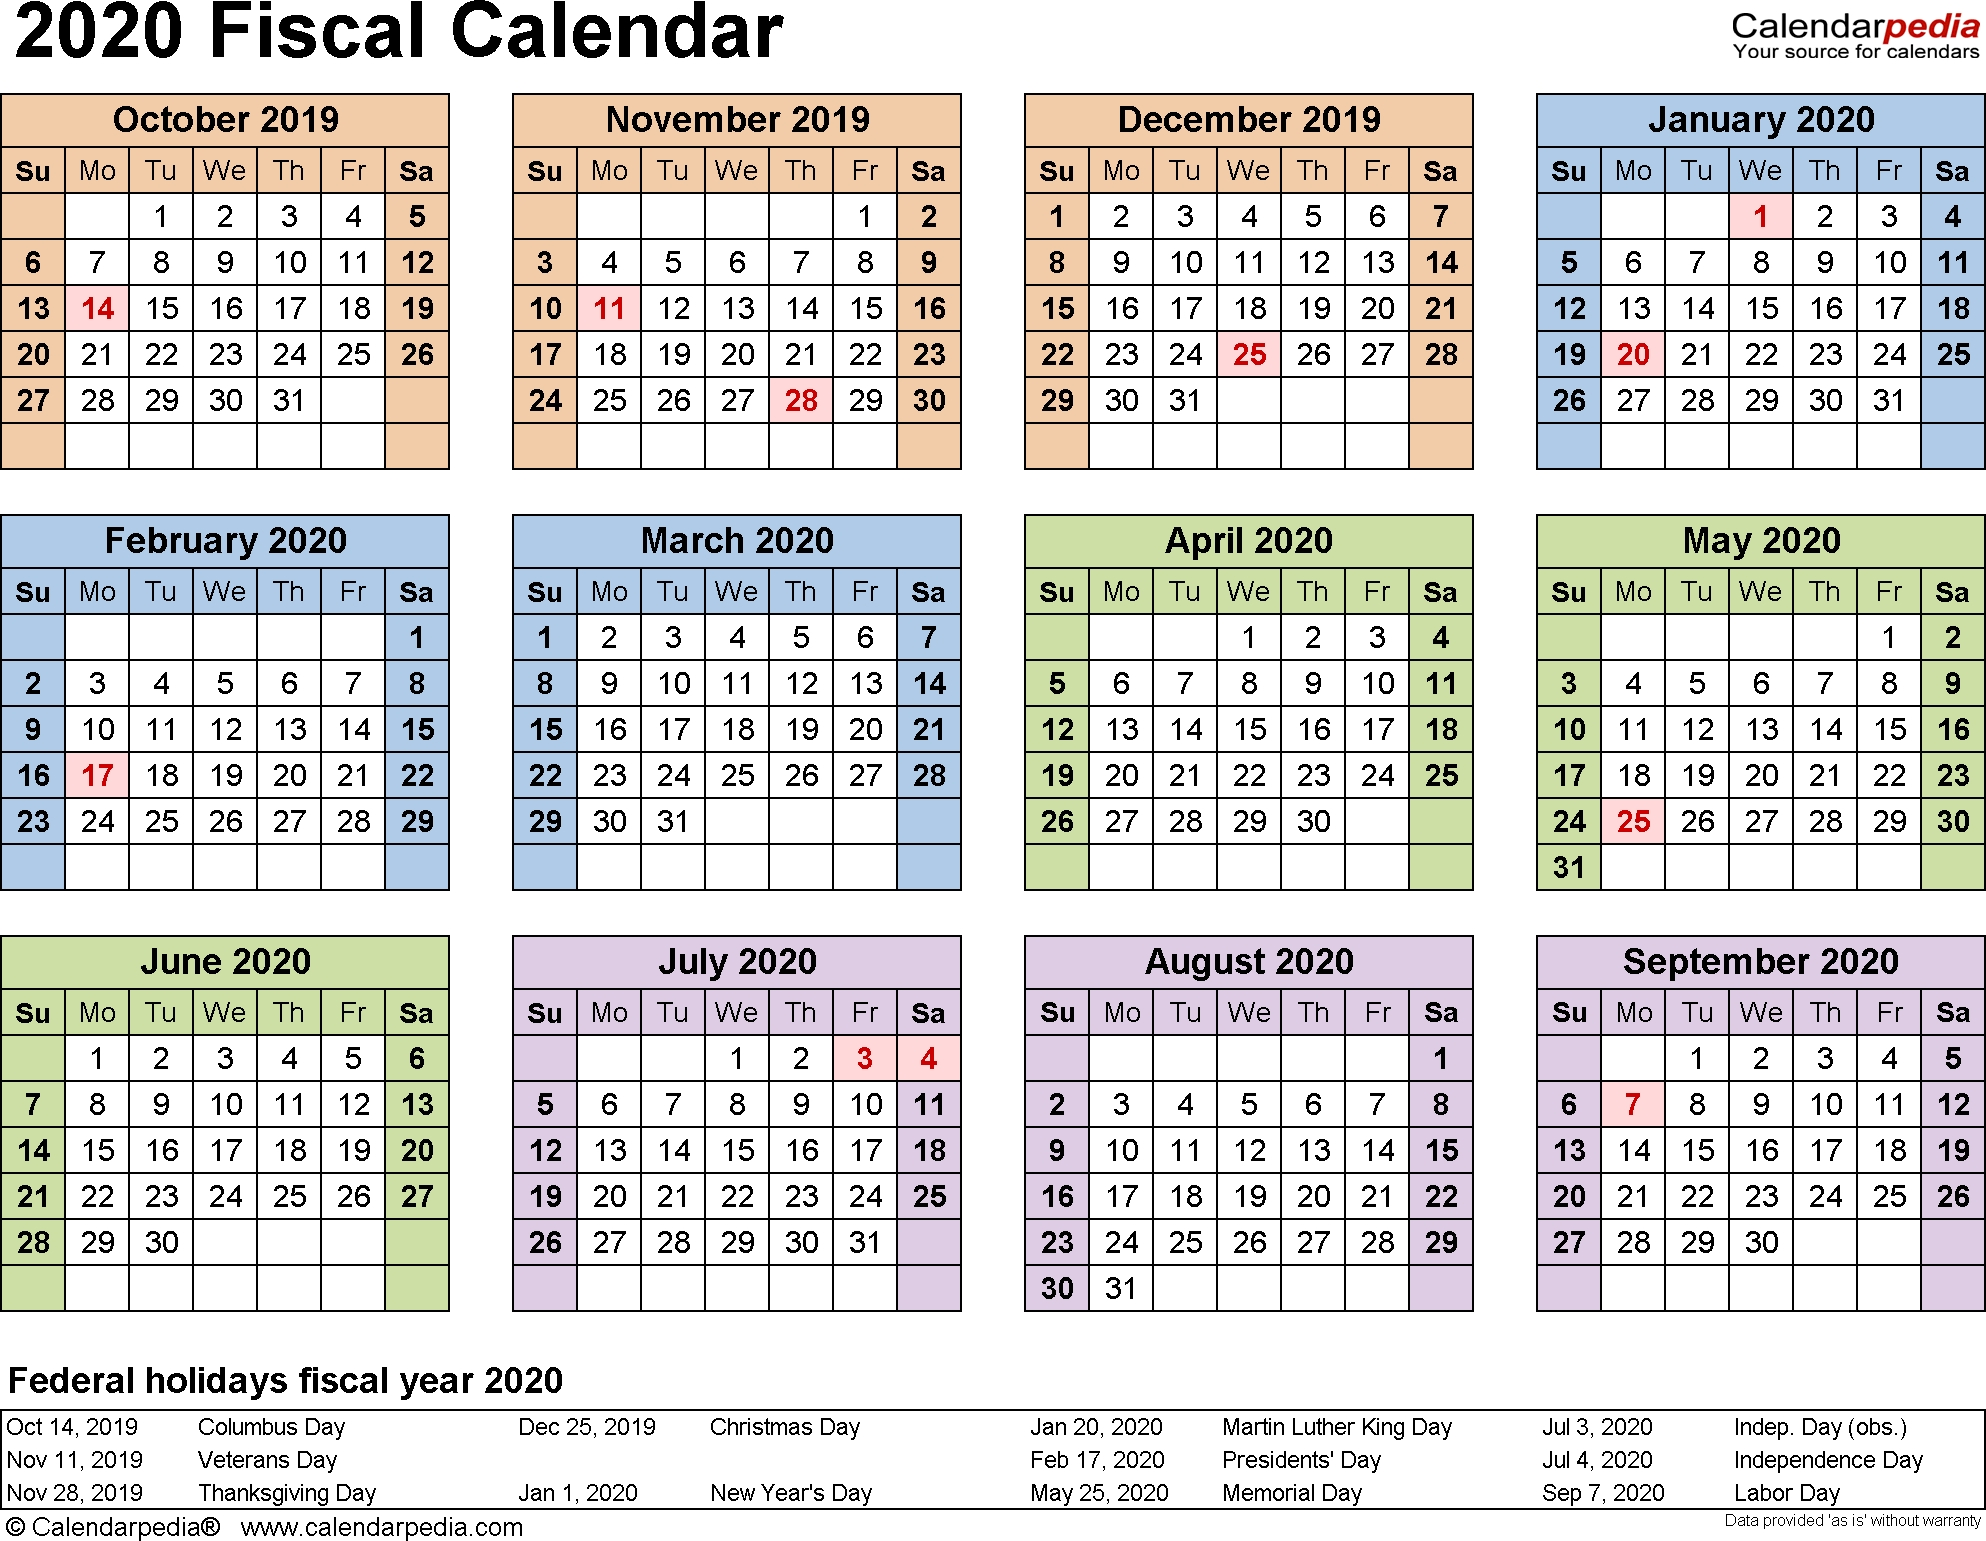 Fiscal Calendars 2020 As Free Printable Pdf Templates intended for Pshe Special Days Calender 2020